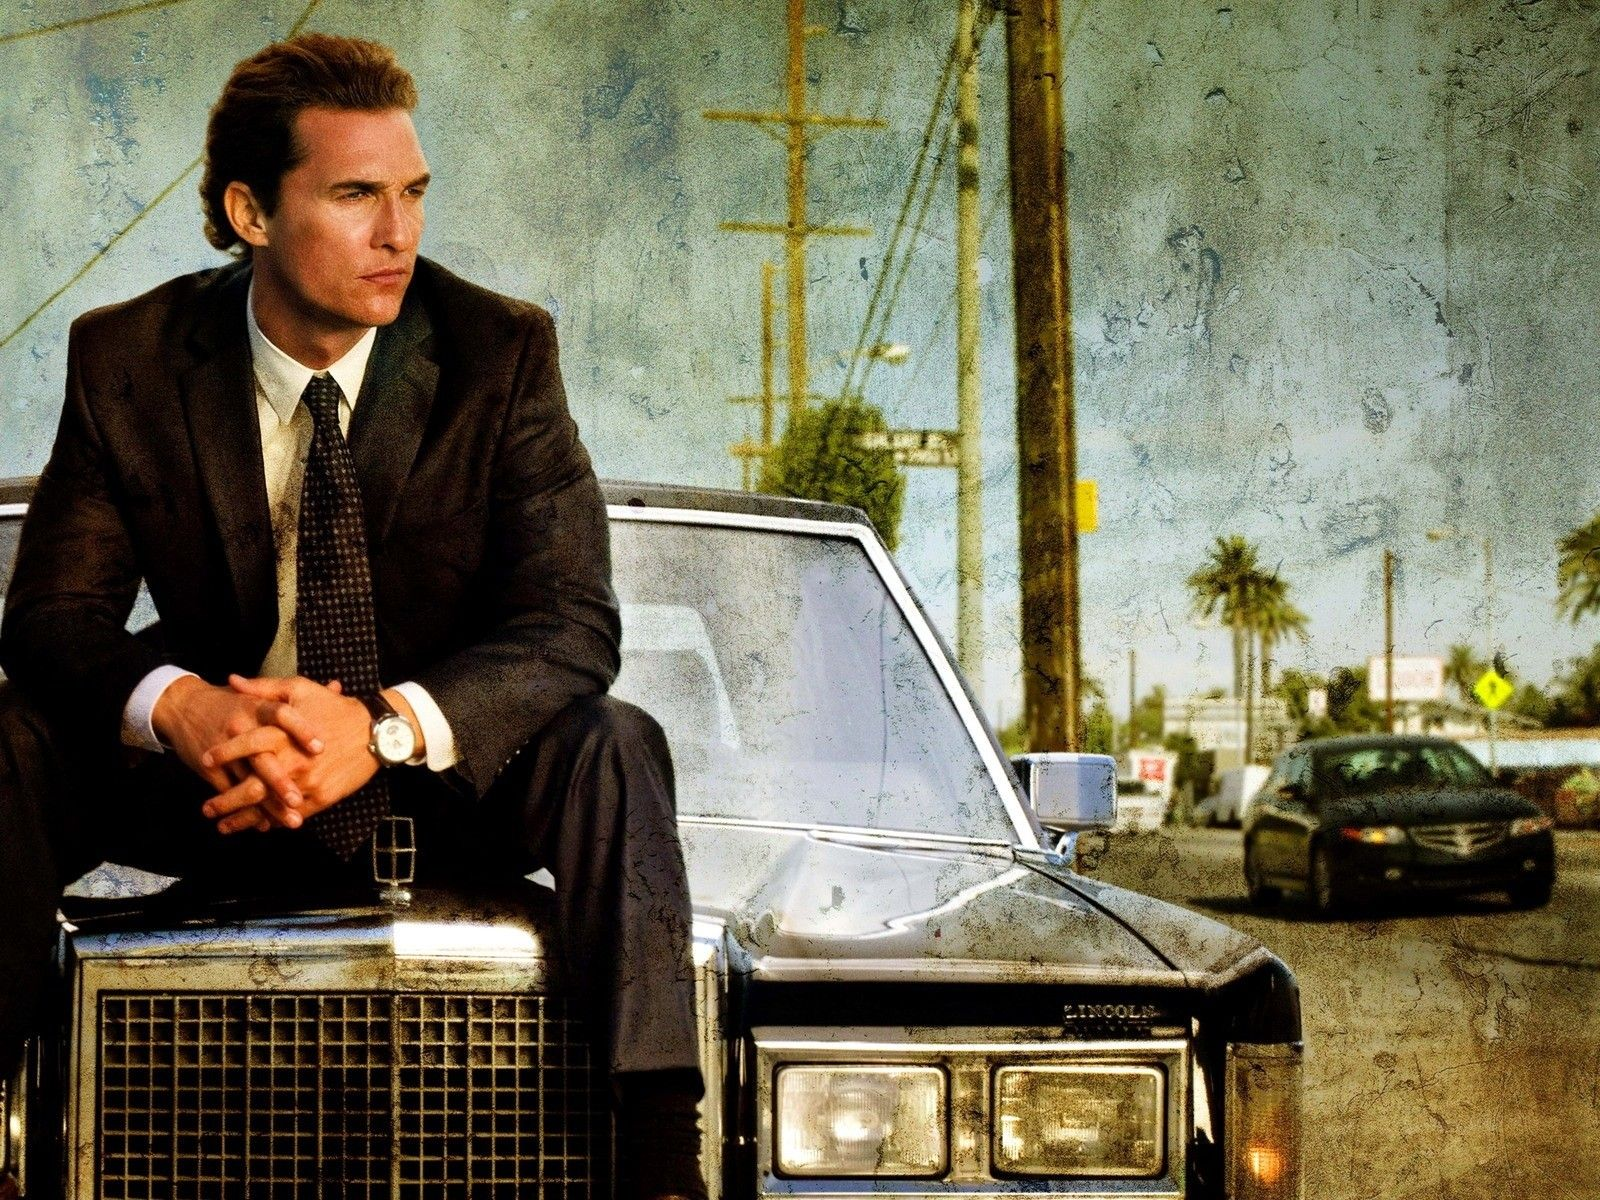 movies cars men The Lincoln Lawyer Matthew McConaughey ...